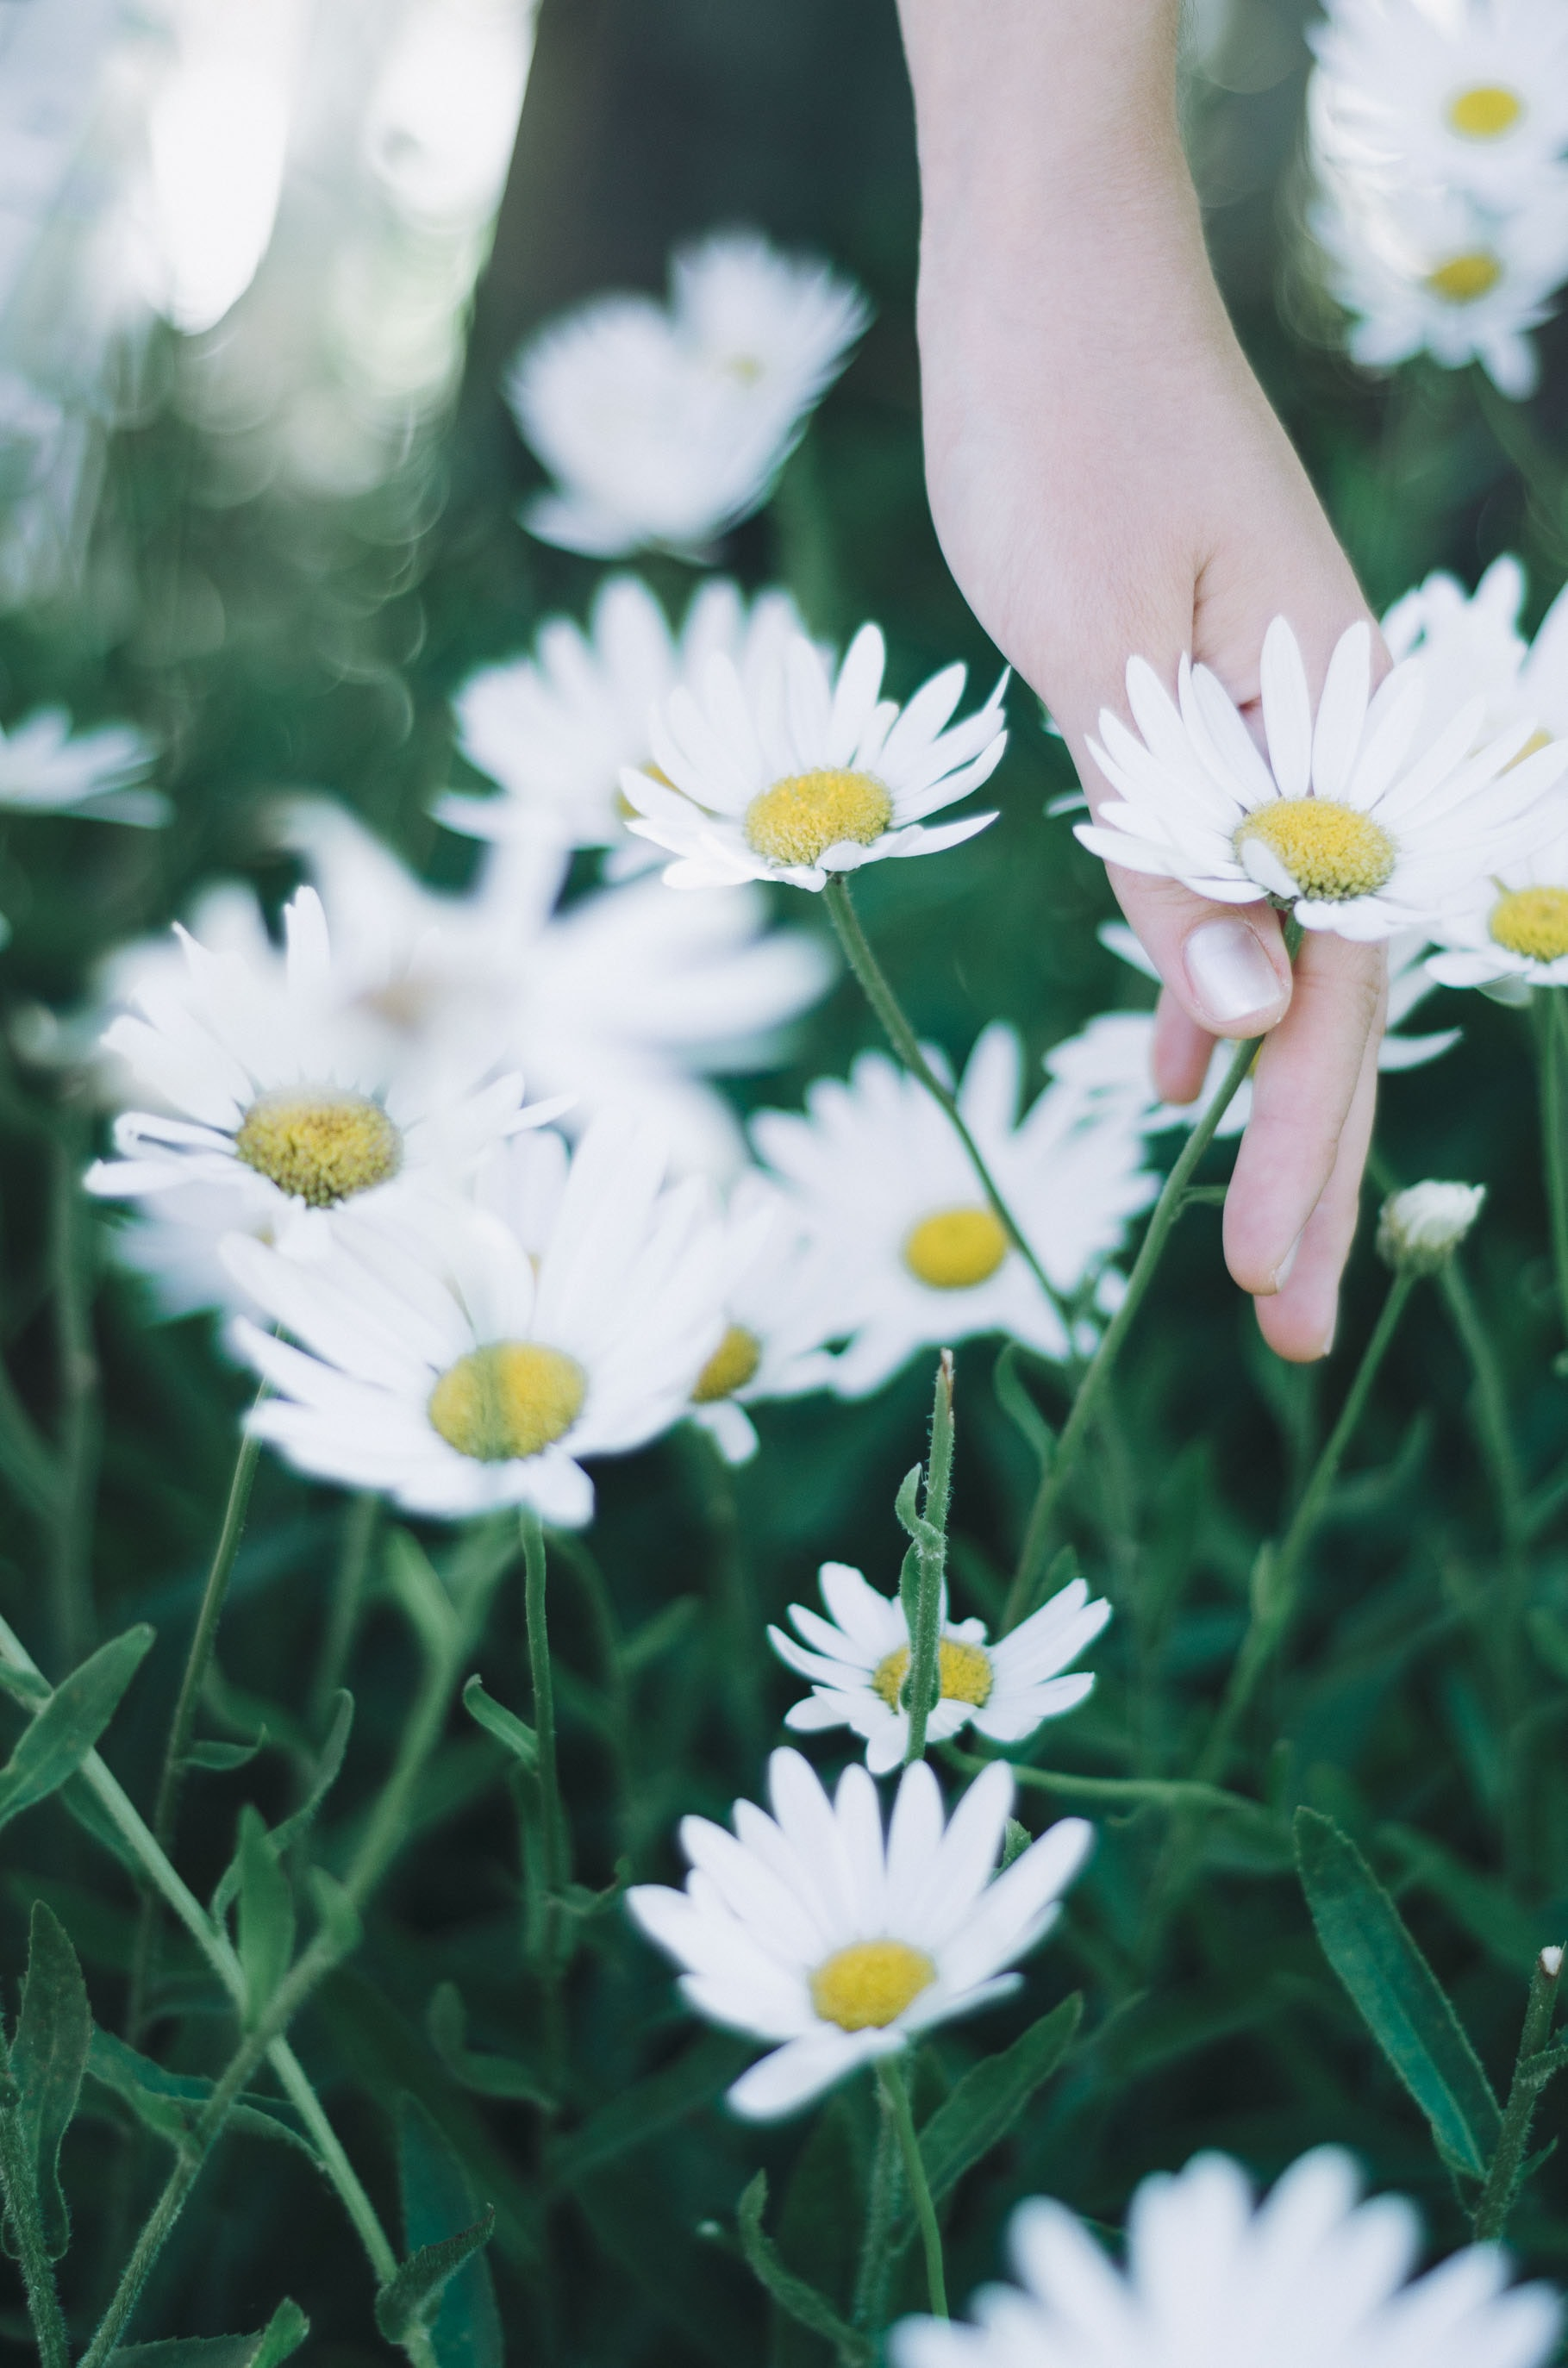 person holding daisy flowers